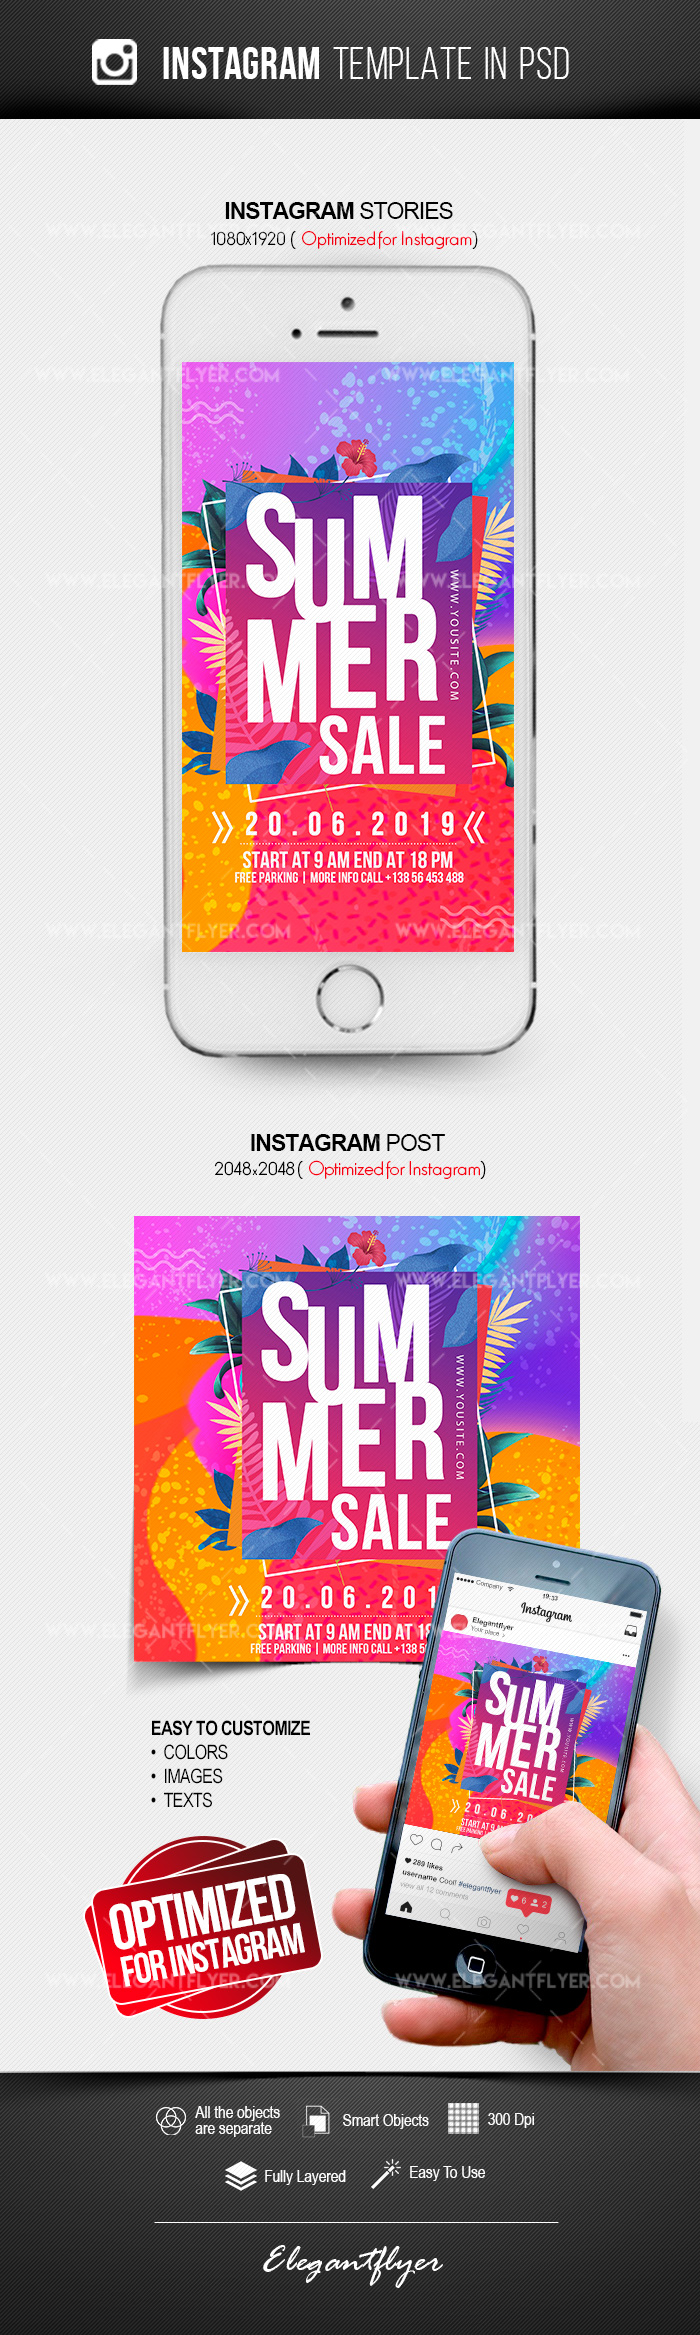 Summer Sale – Instagram Stories Template in PSD + Post Templates